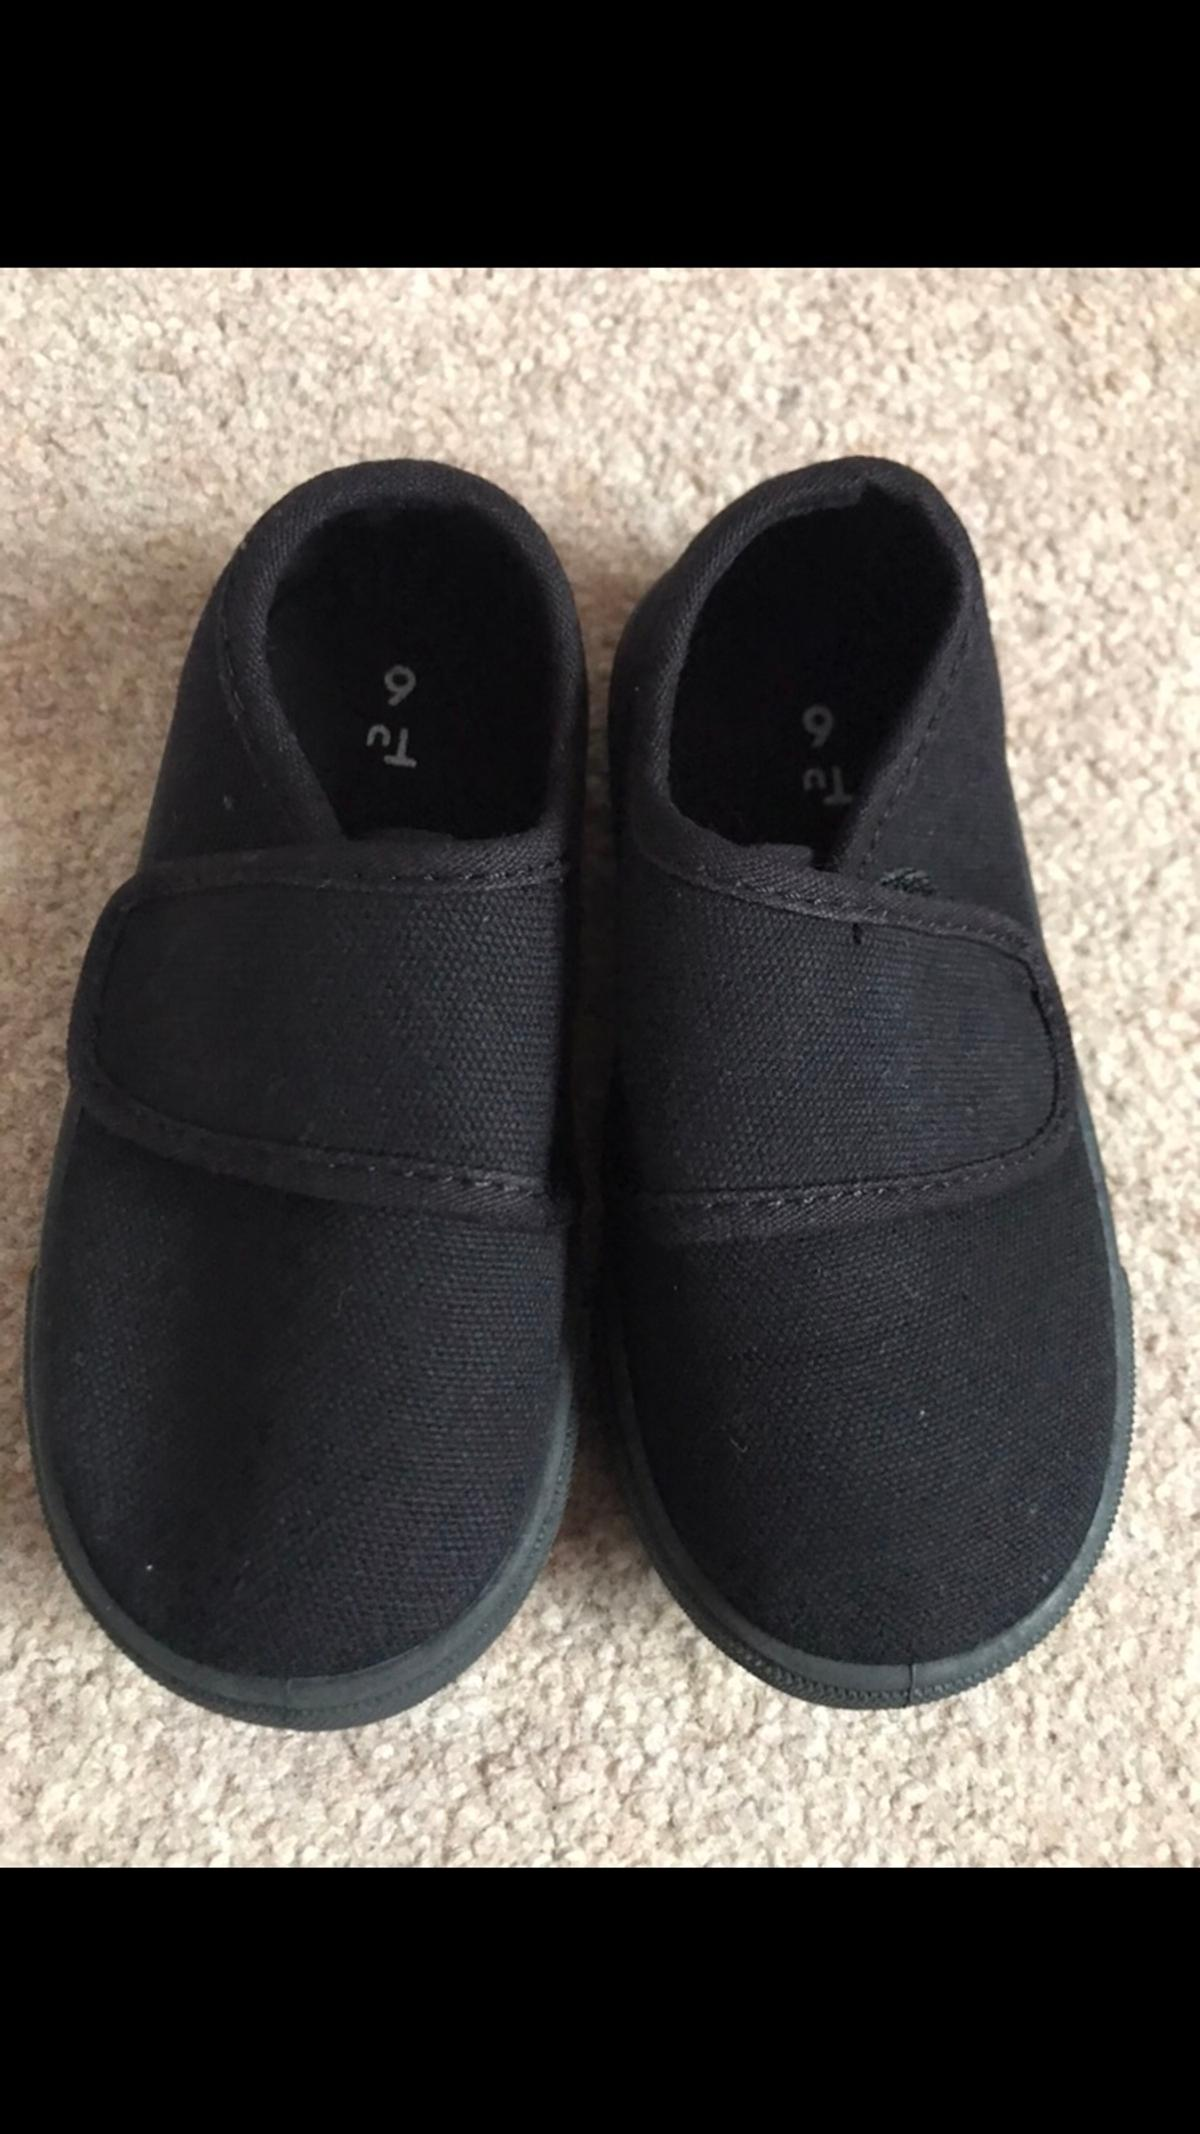 Pleasant Black Girls School Pumps Size 6 And 7 New In Dudley For 2 00 For Natural Hairstyles Runnerswayorg